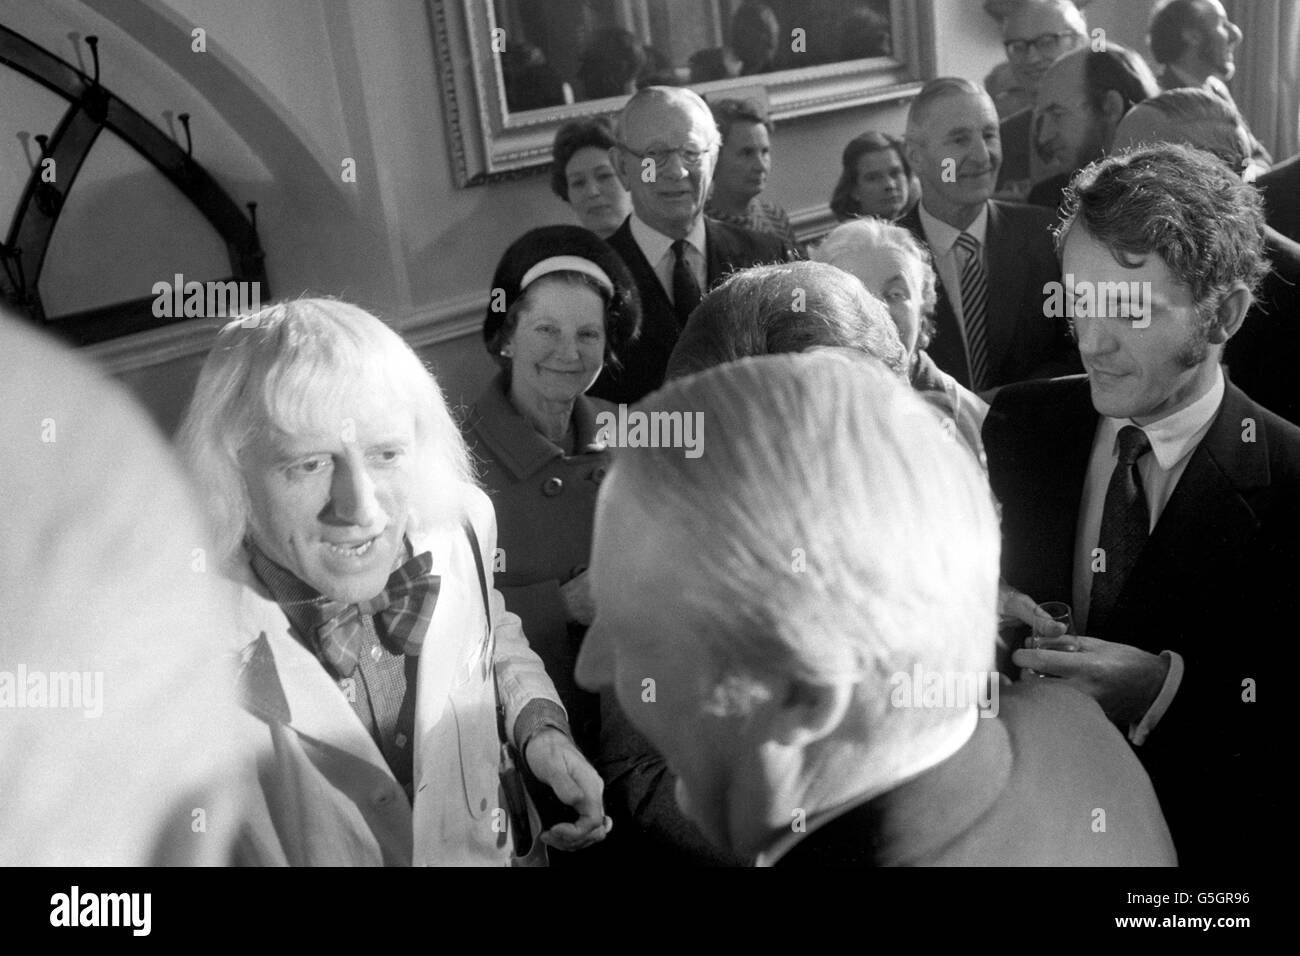 Leeds General Infirmary - Edward Heath and Jimmy Savile - Leeds Stock Photo